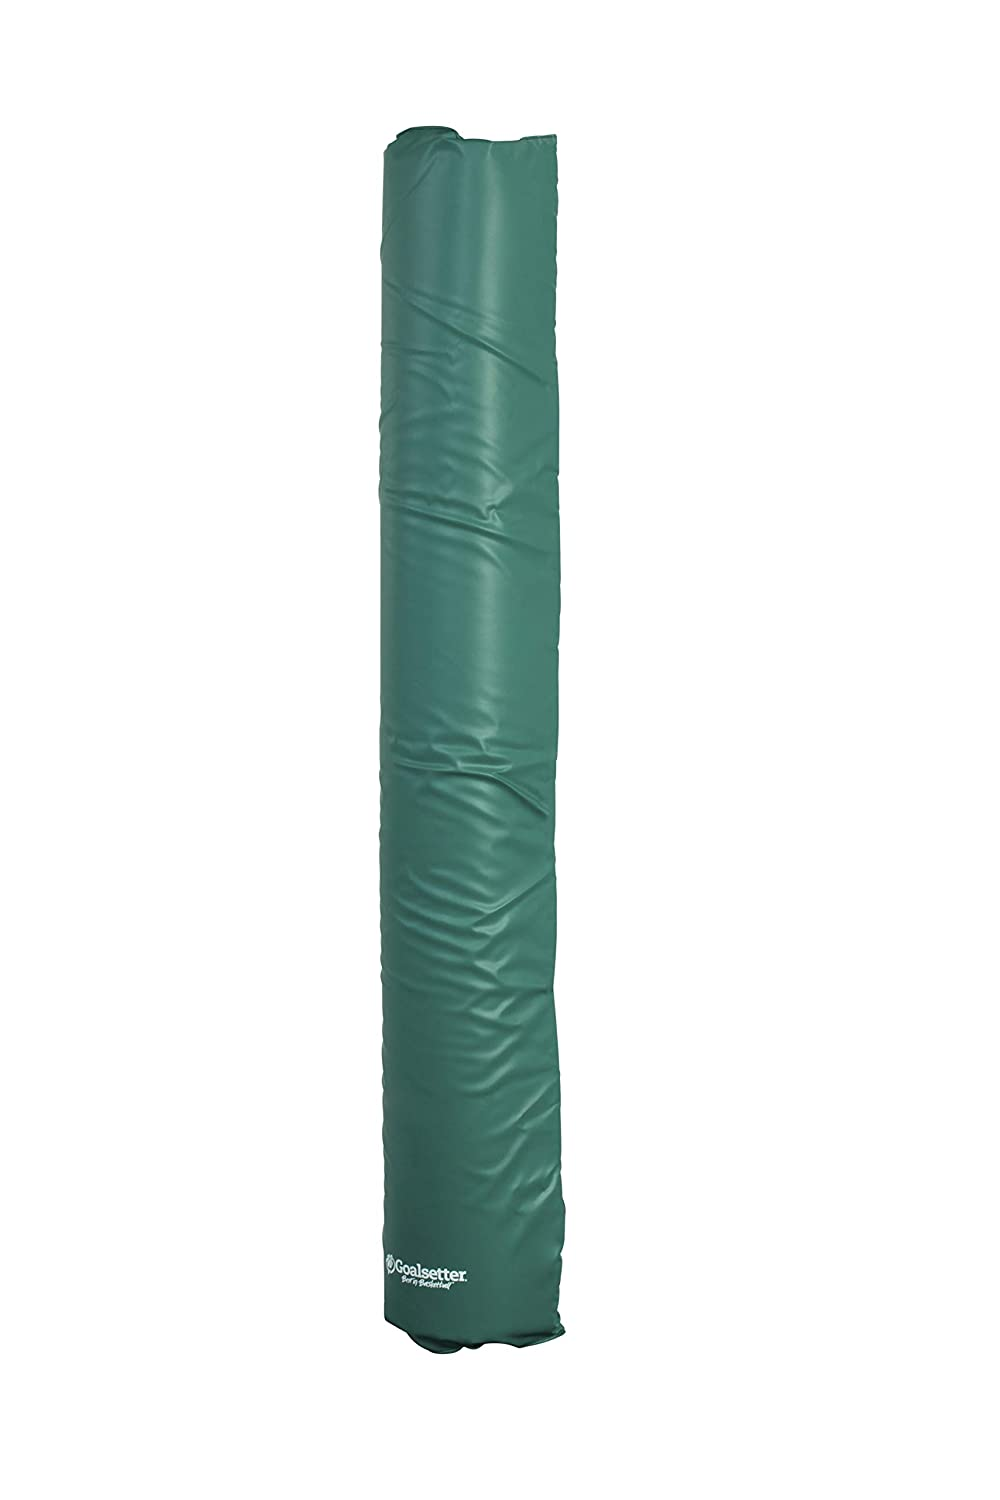 Goalsetter Wrap Around Basketball Pole Pad Provides Added Protection During Play and Made in United States Padding-20GRN